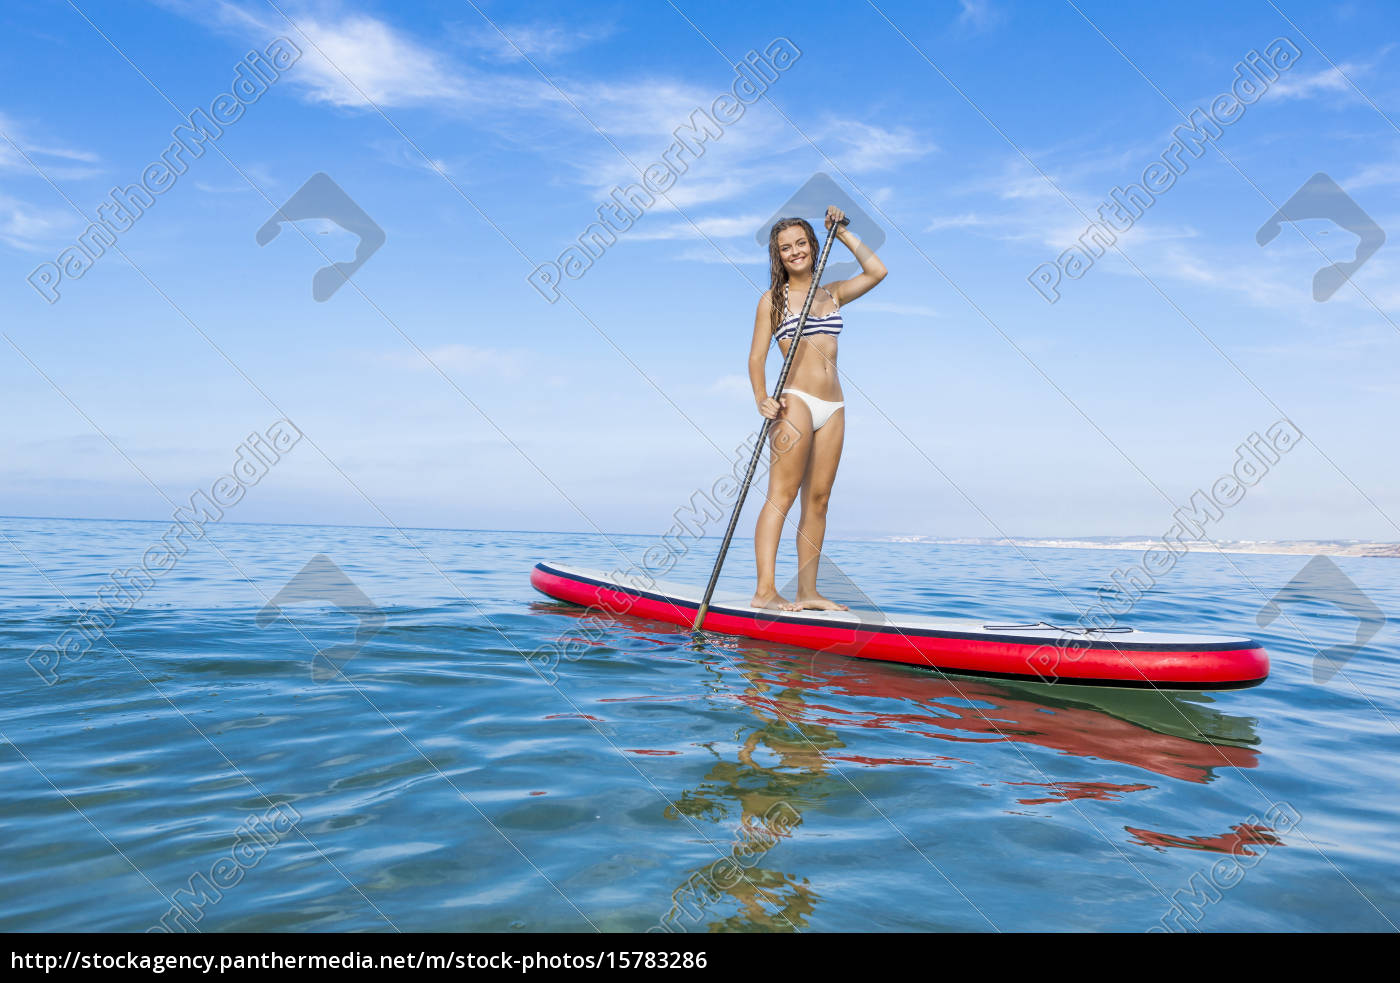 woman, practicing, paddle - 15783286